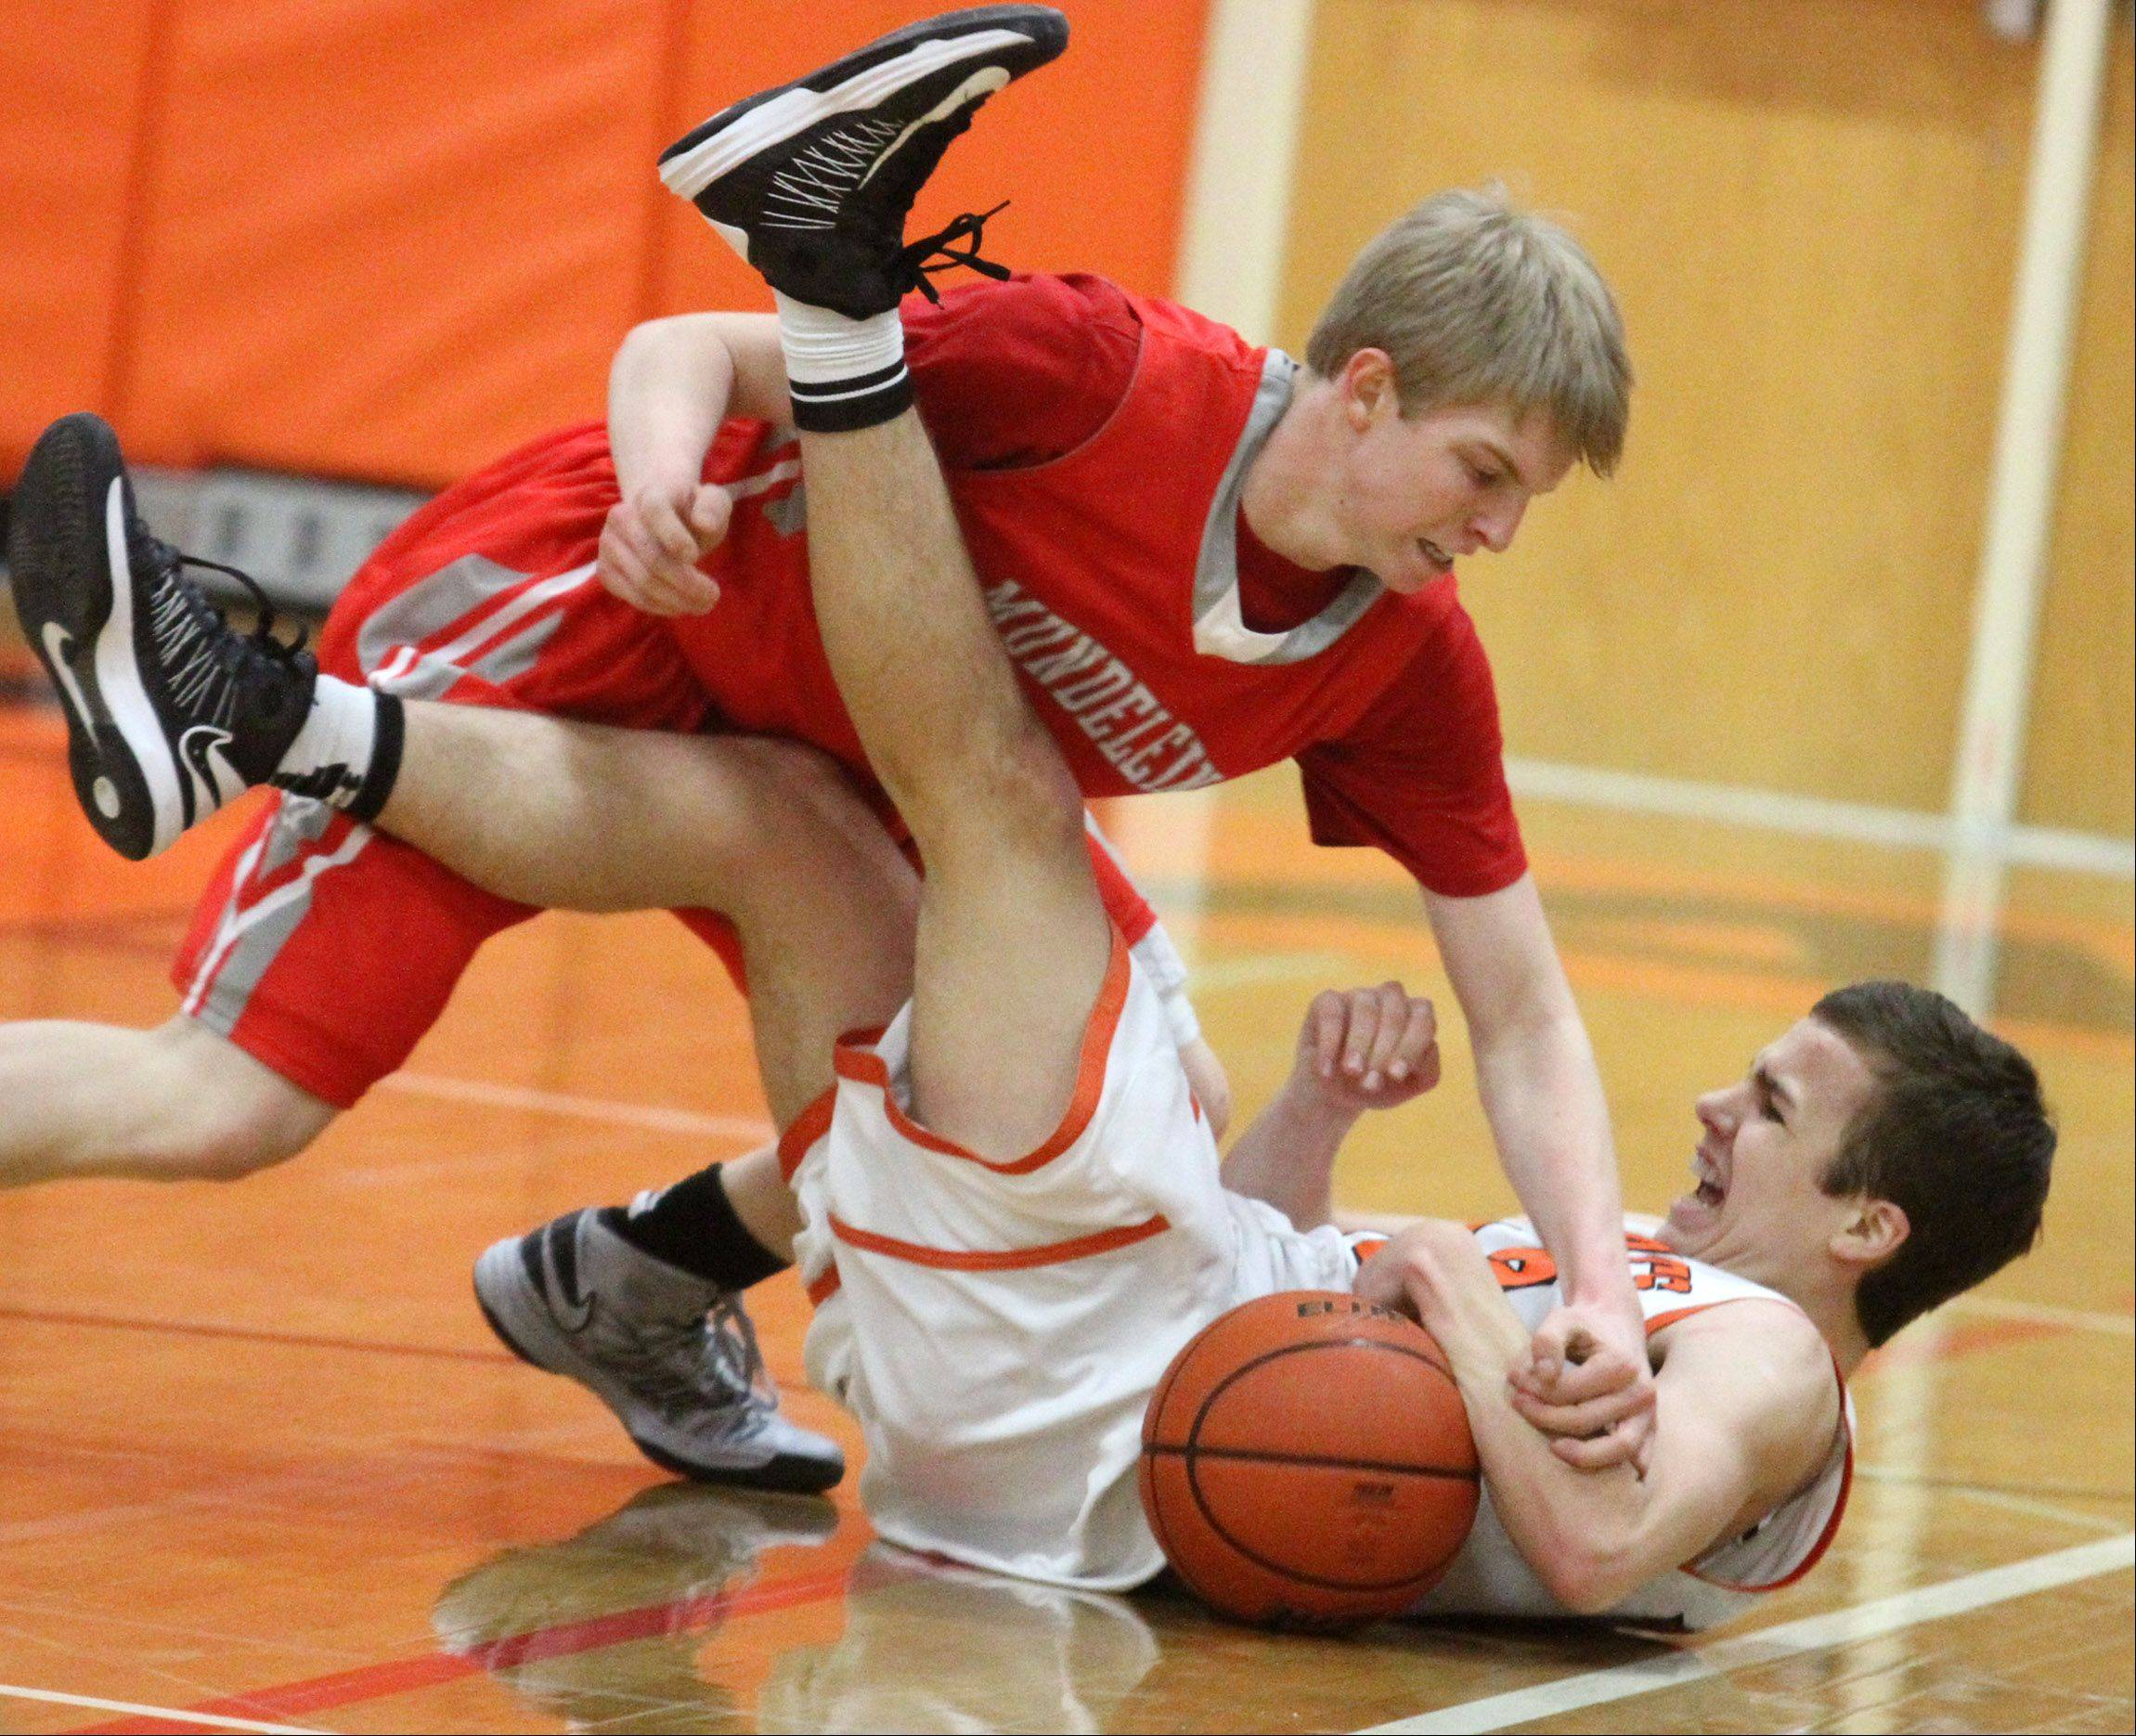 Mundelein defender Dylan Delaquila tries to take the ball from Libertyville guard Nick Carlucci after the two collided in the first half at Libertyville on Friday.